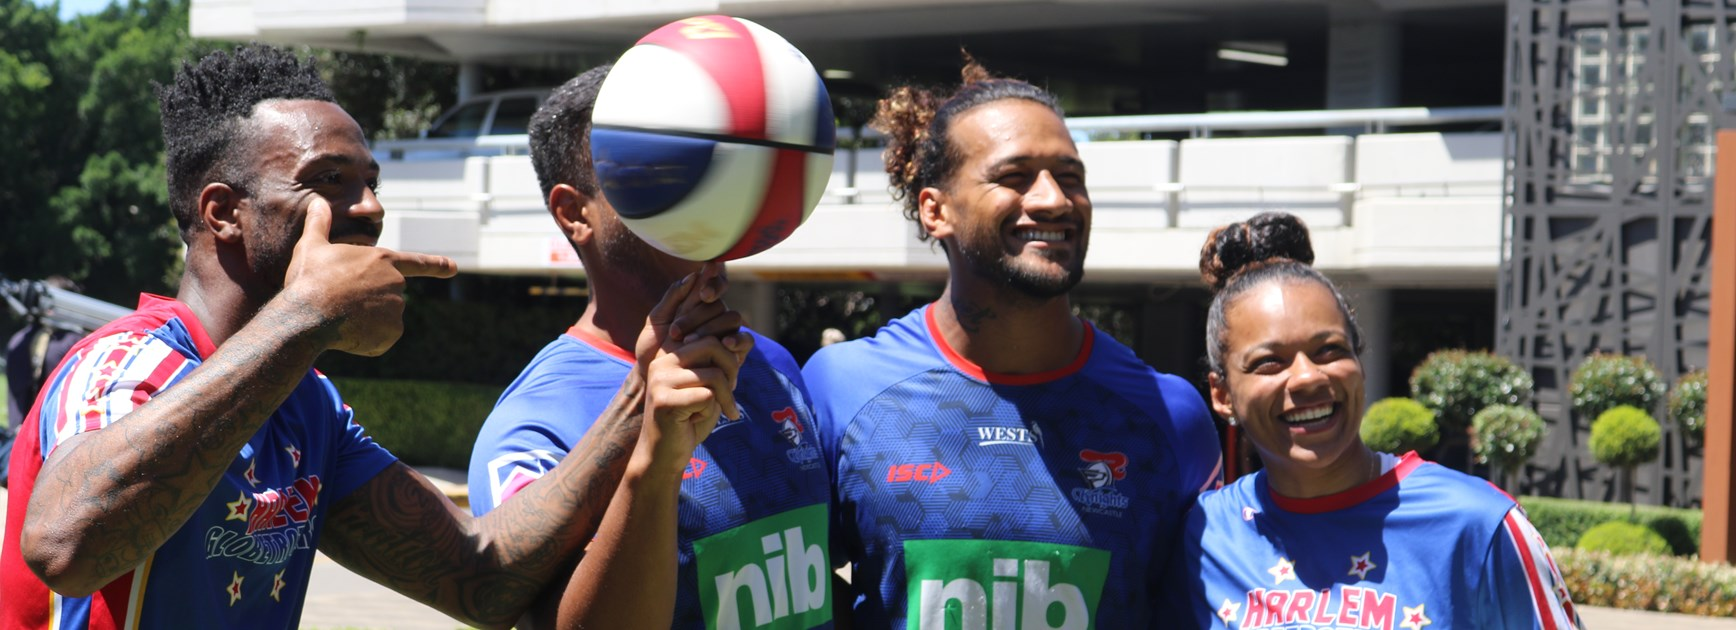 Hunt, Gavet aim to make Newcastle last stop on NRL journey